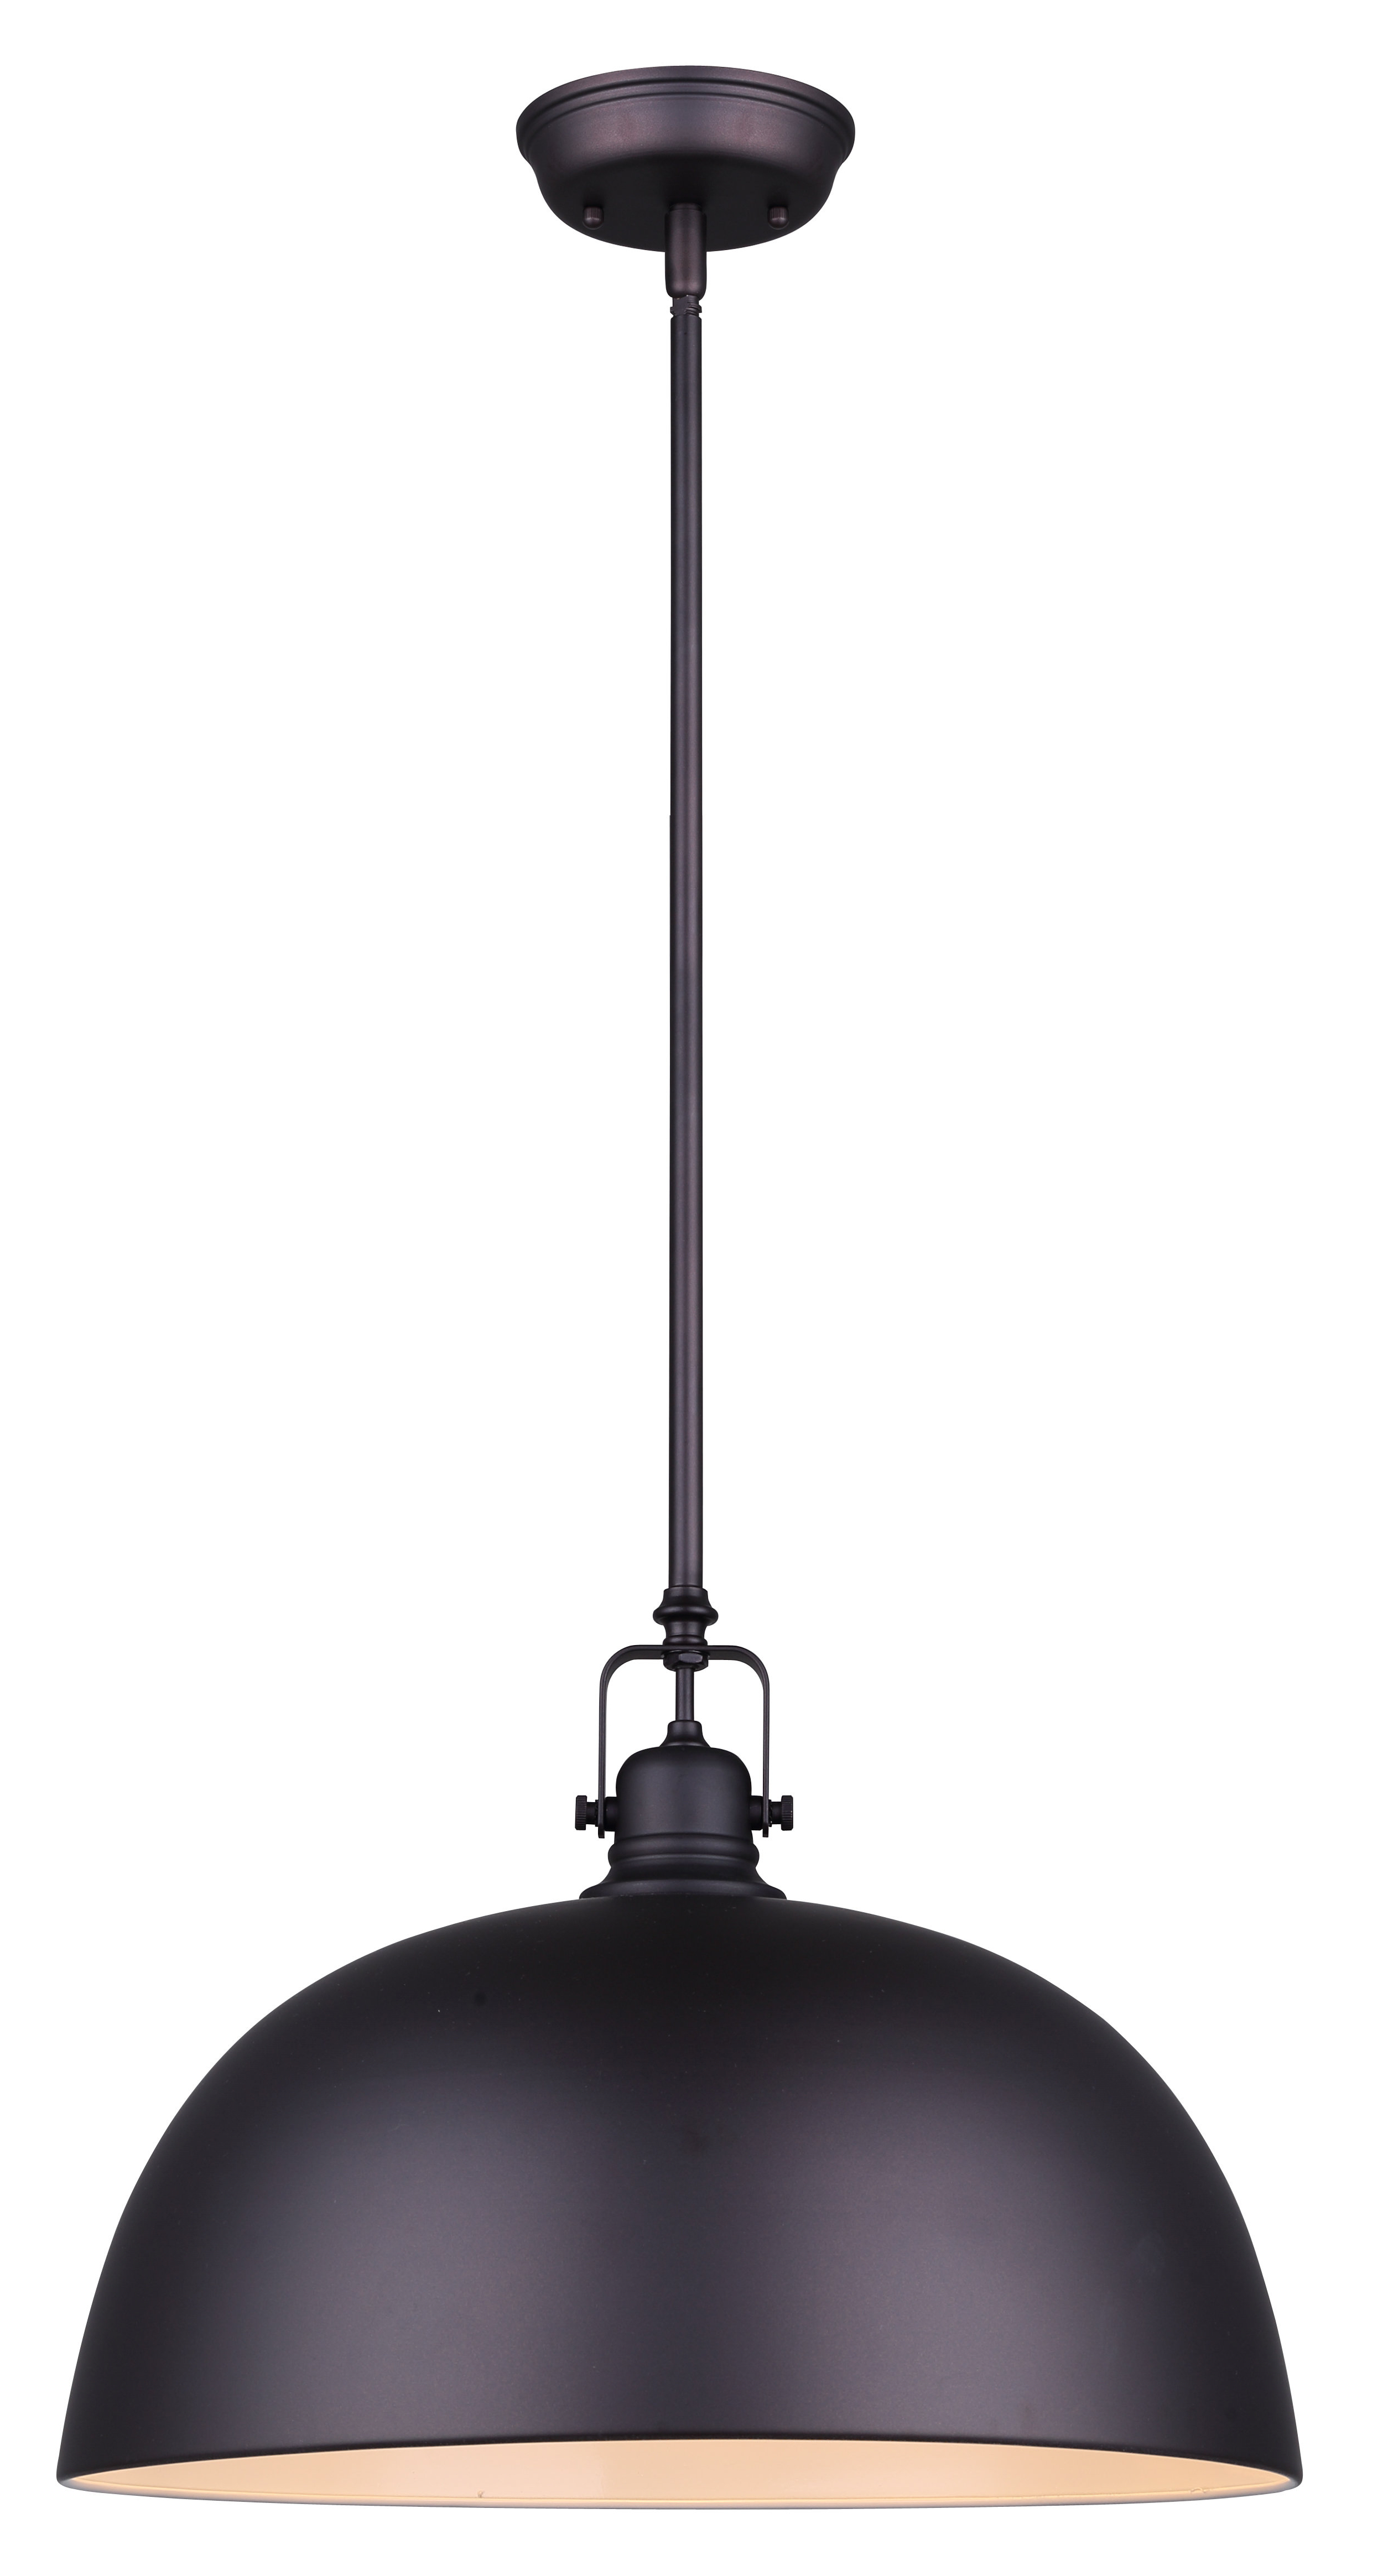 Yarger 1-Light Single Bell Pendants with regard to Most Recently Released Southlake 1-Light Single Dome Pendant